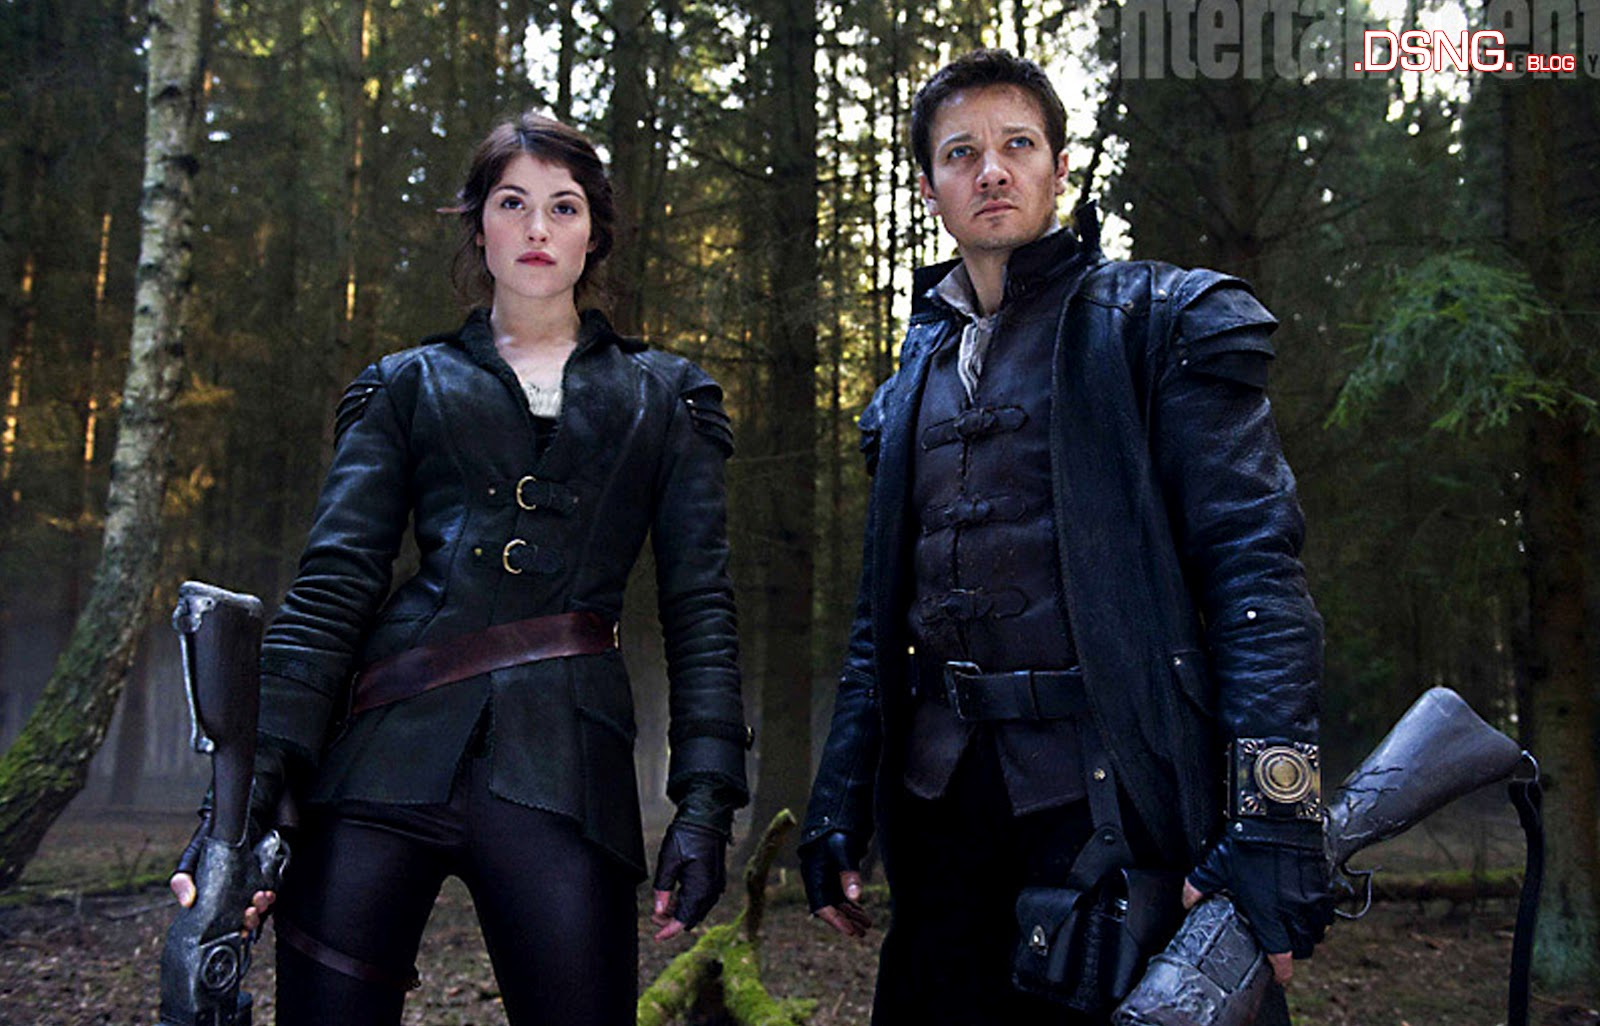 Gemma+Arterton+and+Jeremy+Renner+in+Hansel+and+Gretel+Witch+Hunters ...